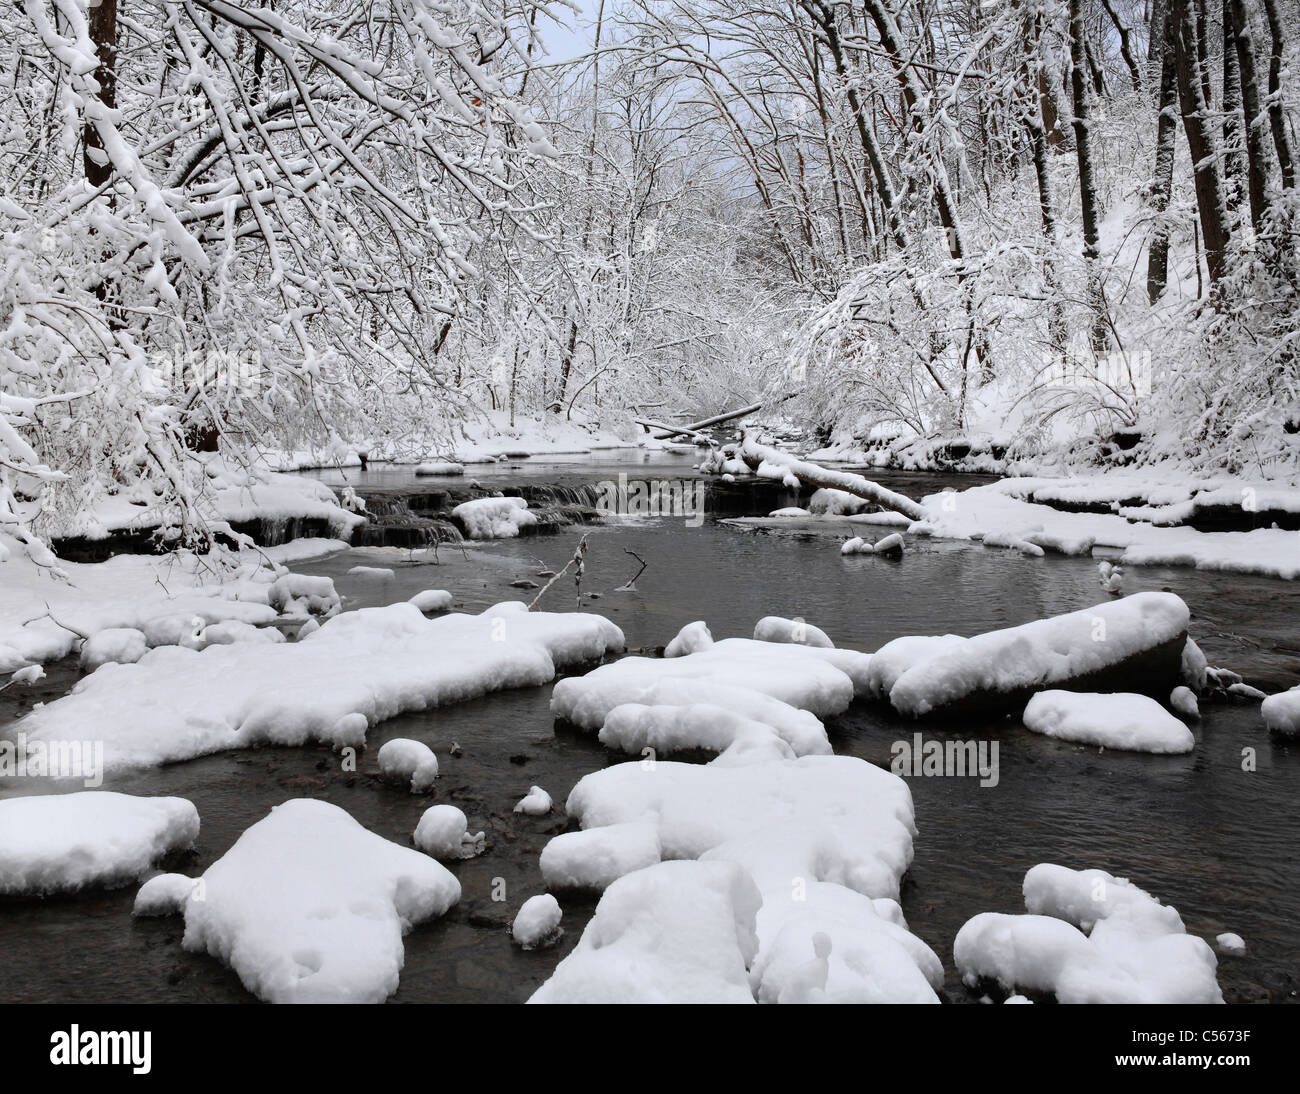 A Snow Covered Little Creek In Winter, Keehner Park, Southwestern Ohio, USA Stock Photo